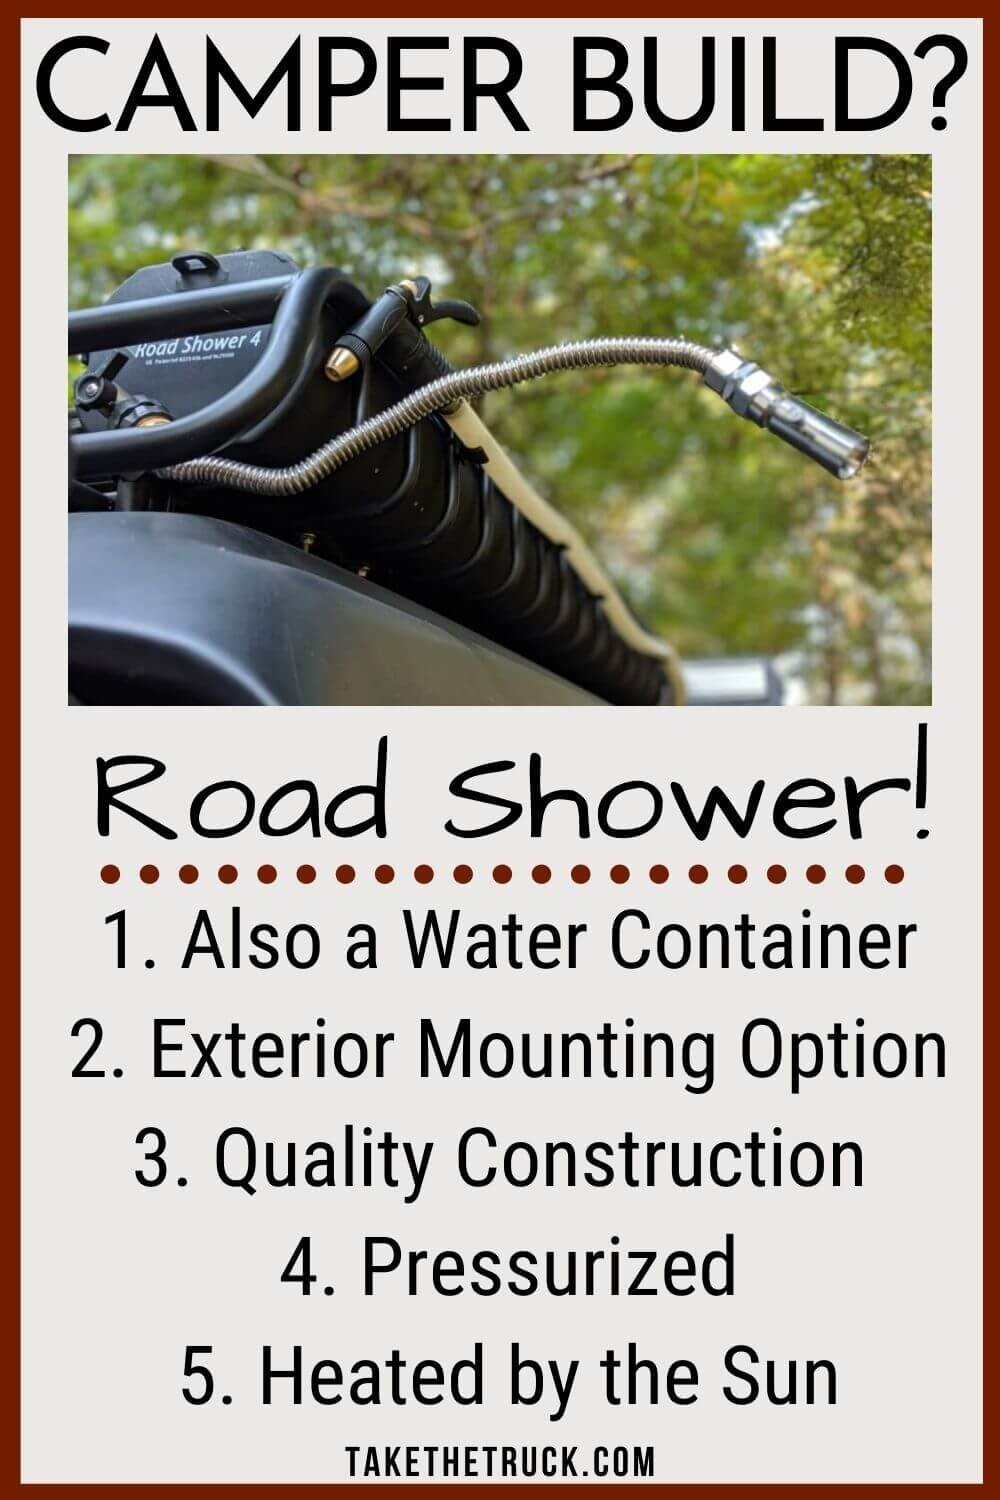 The Road Shower 4 is a truck camping water container and shower, in one! The Roadshower makes a great outdoor shower for your camper as well as water storage for drinking.